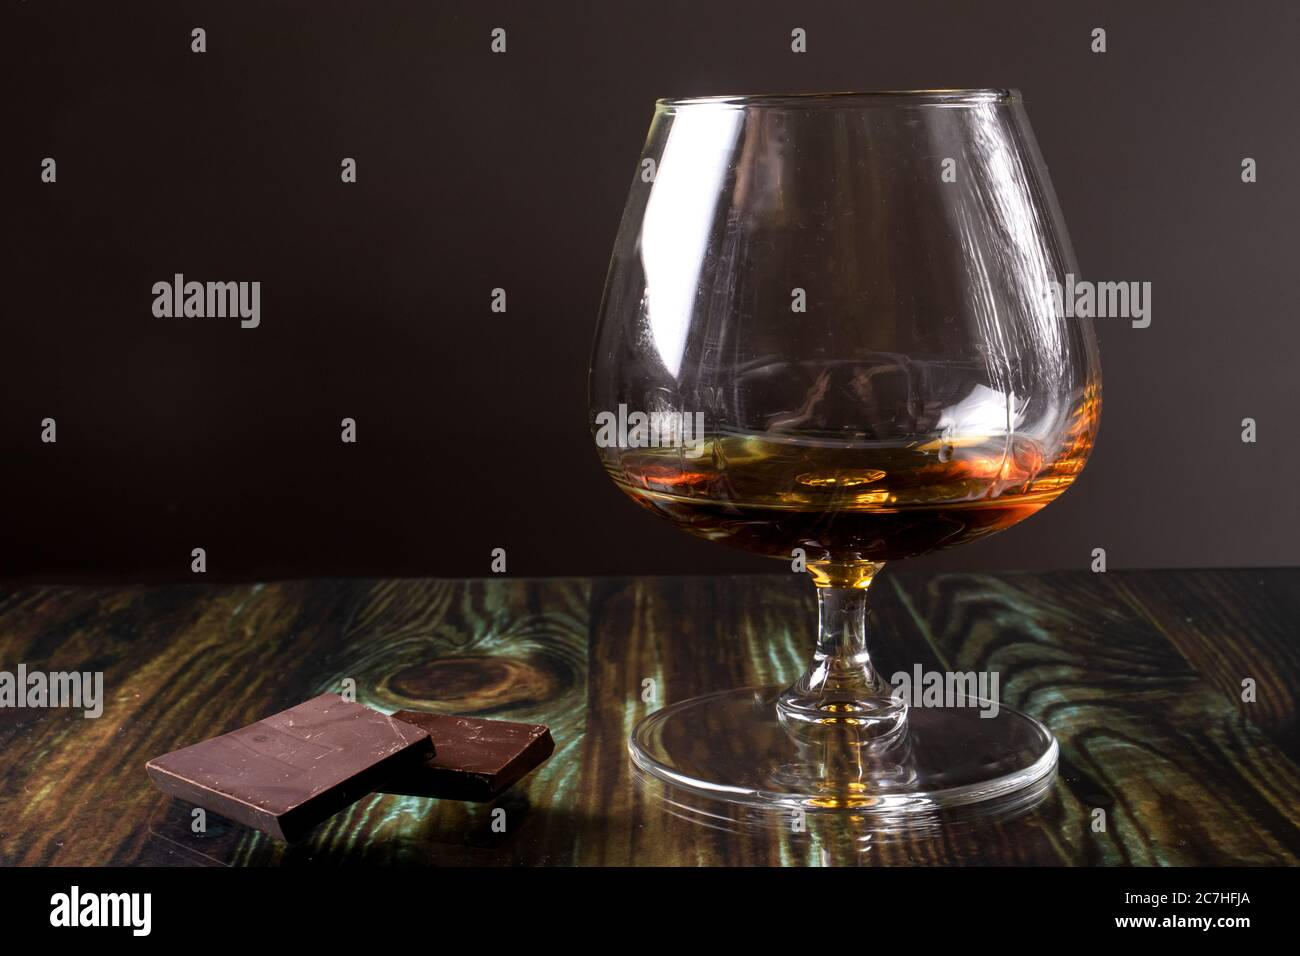 Glass with cognac and dark chocolate. Dear elite alcohol on a dark brown background. Alcoholic drinks. Stock Photo